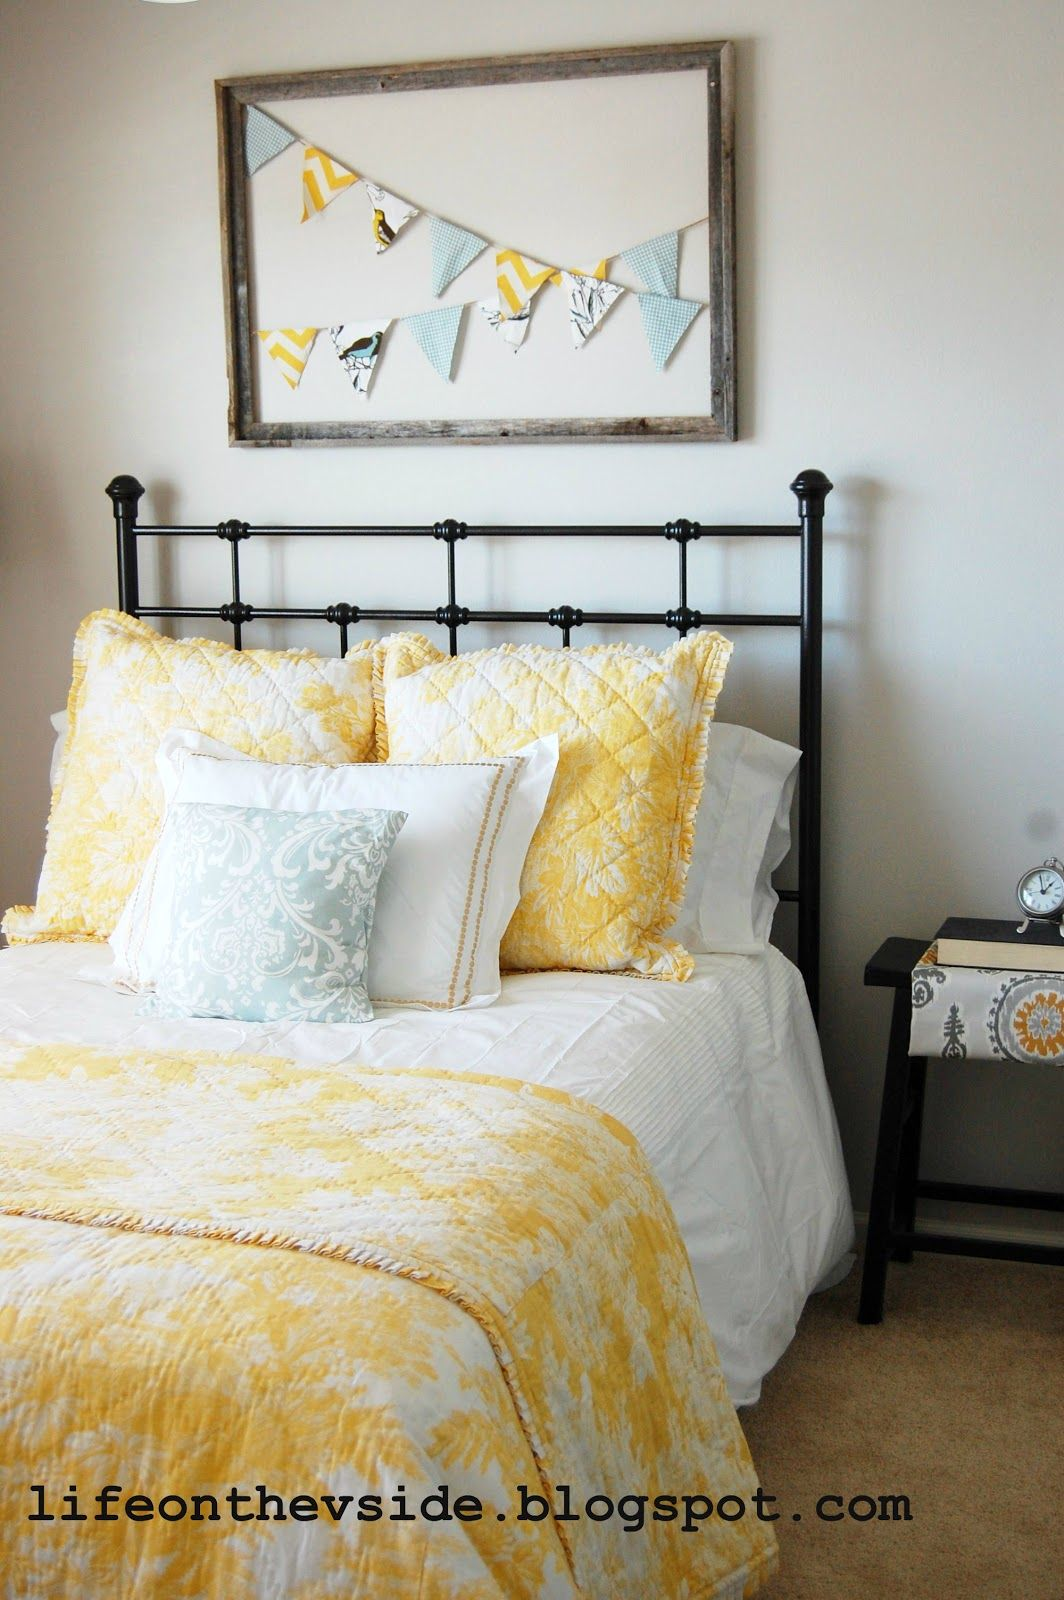 Yellow Rooms Sherwin Williams Agreeable Gray Bedroom The Bedding Would Look